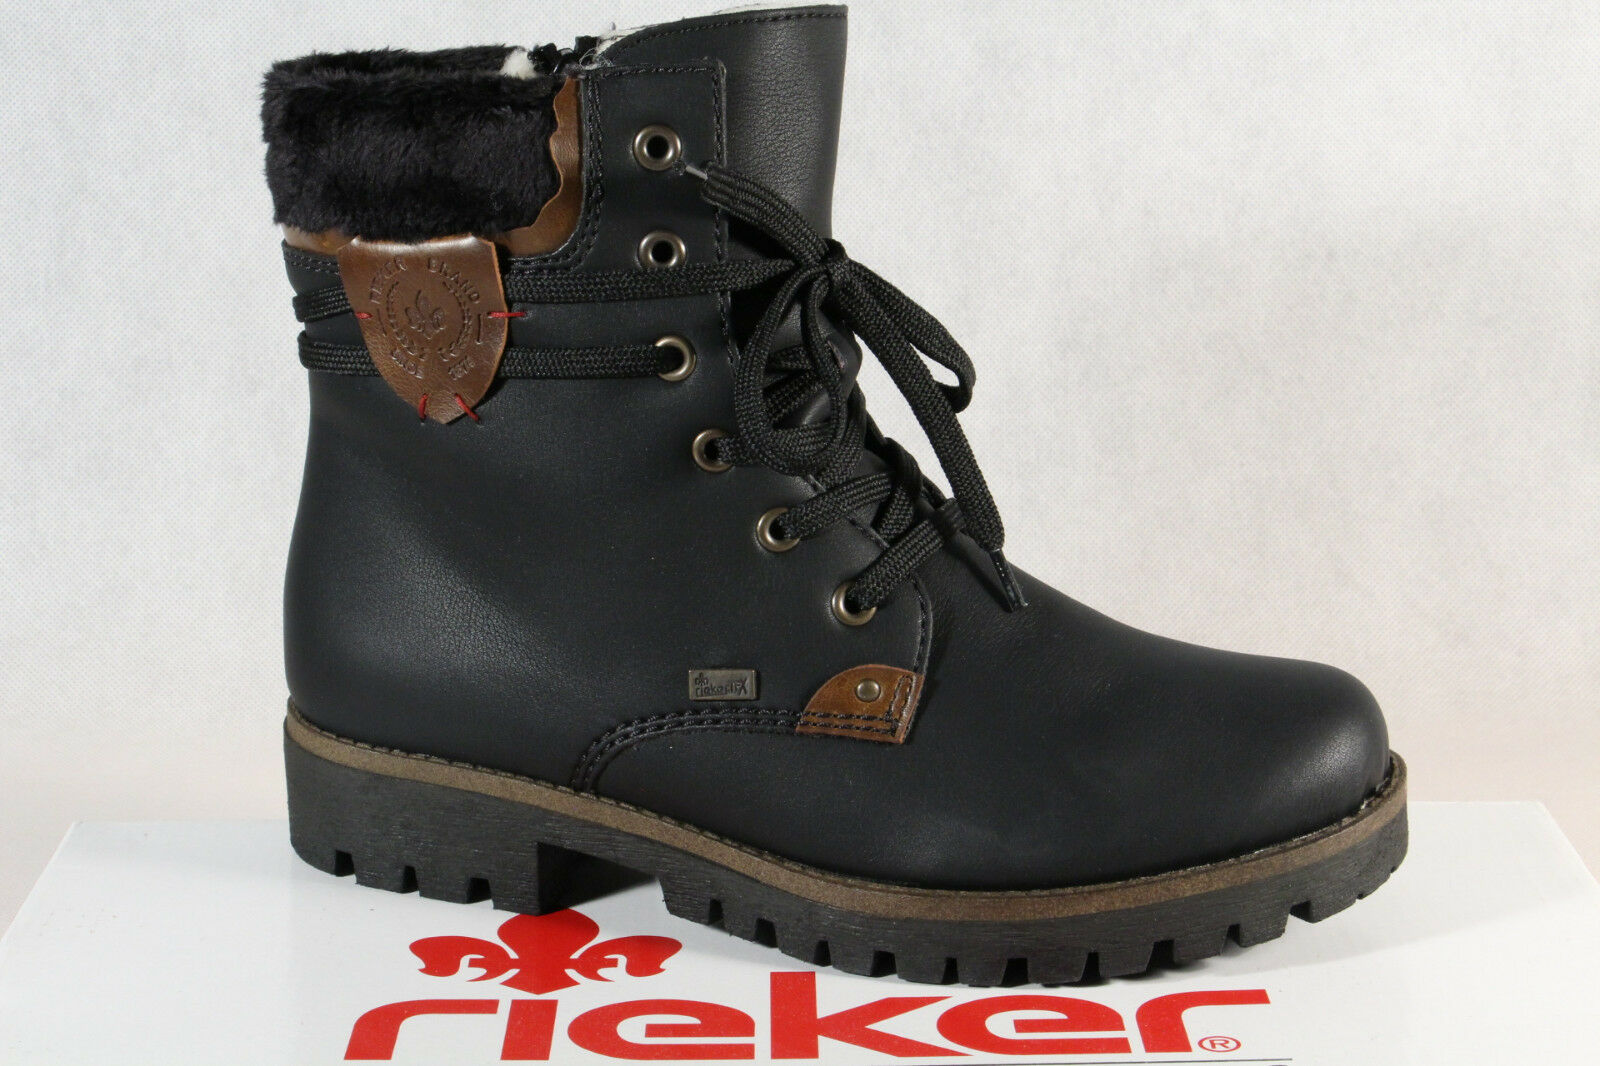 Rieker Ladies Tex Ankle Boots Winter Boots Black 785G5 New